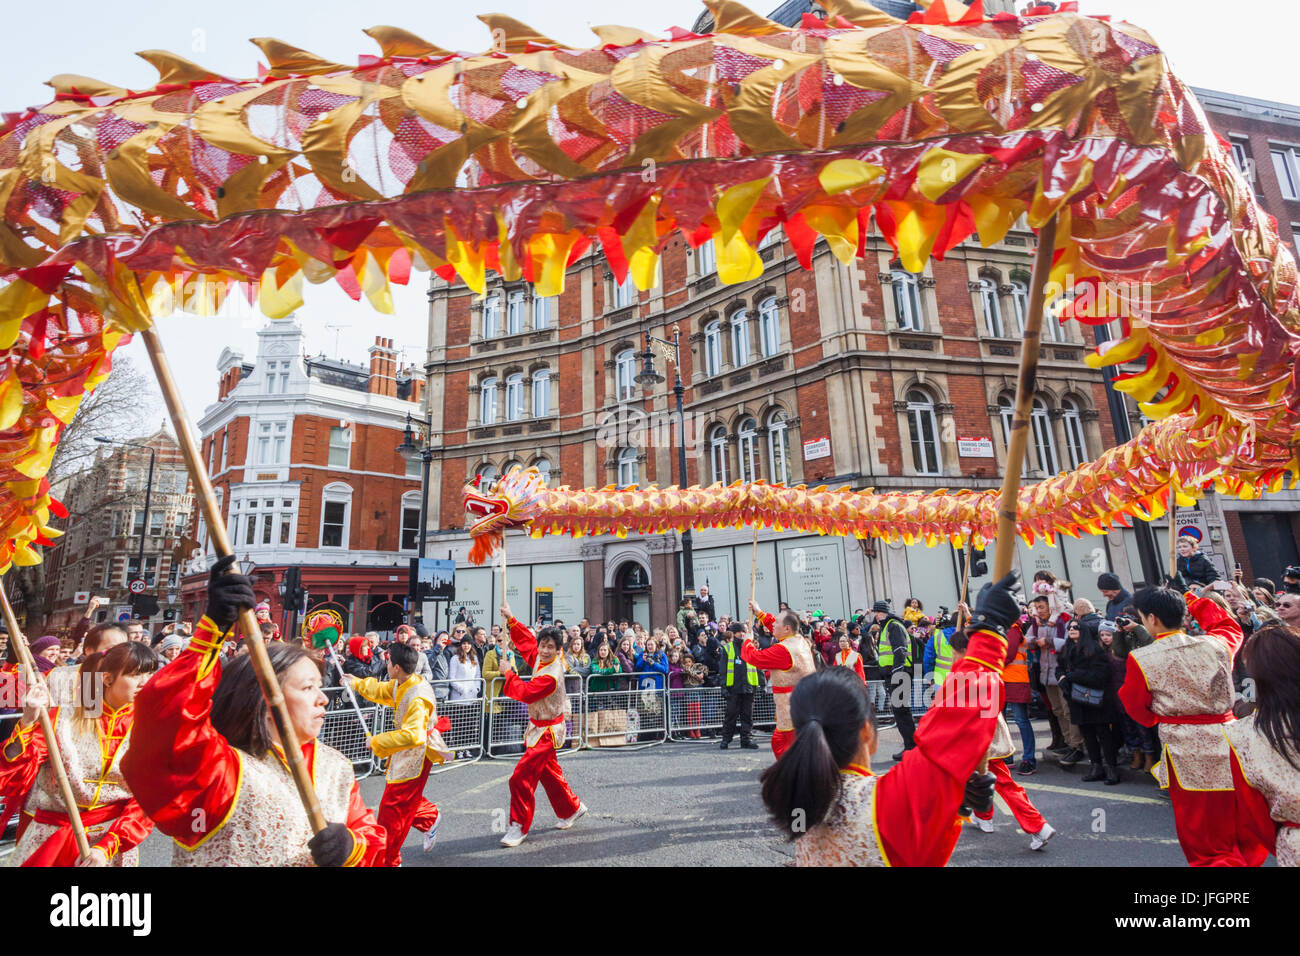 England, London, Soho, Chinatown, Chinese New Year Festival Parade, Dragon Dance - Stock Image